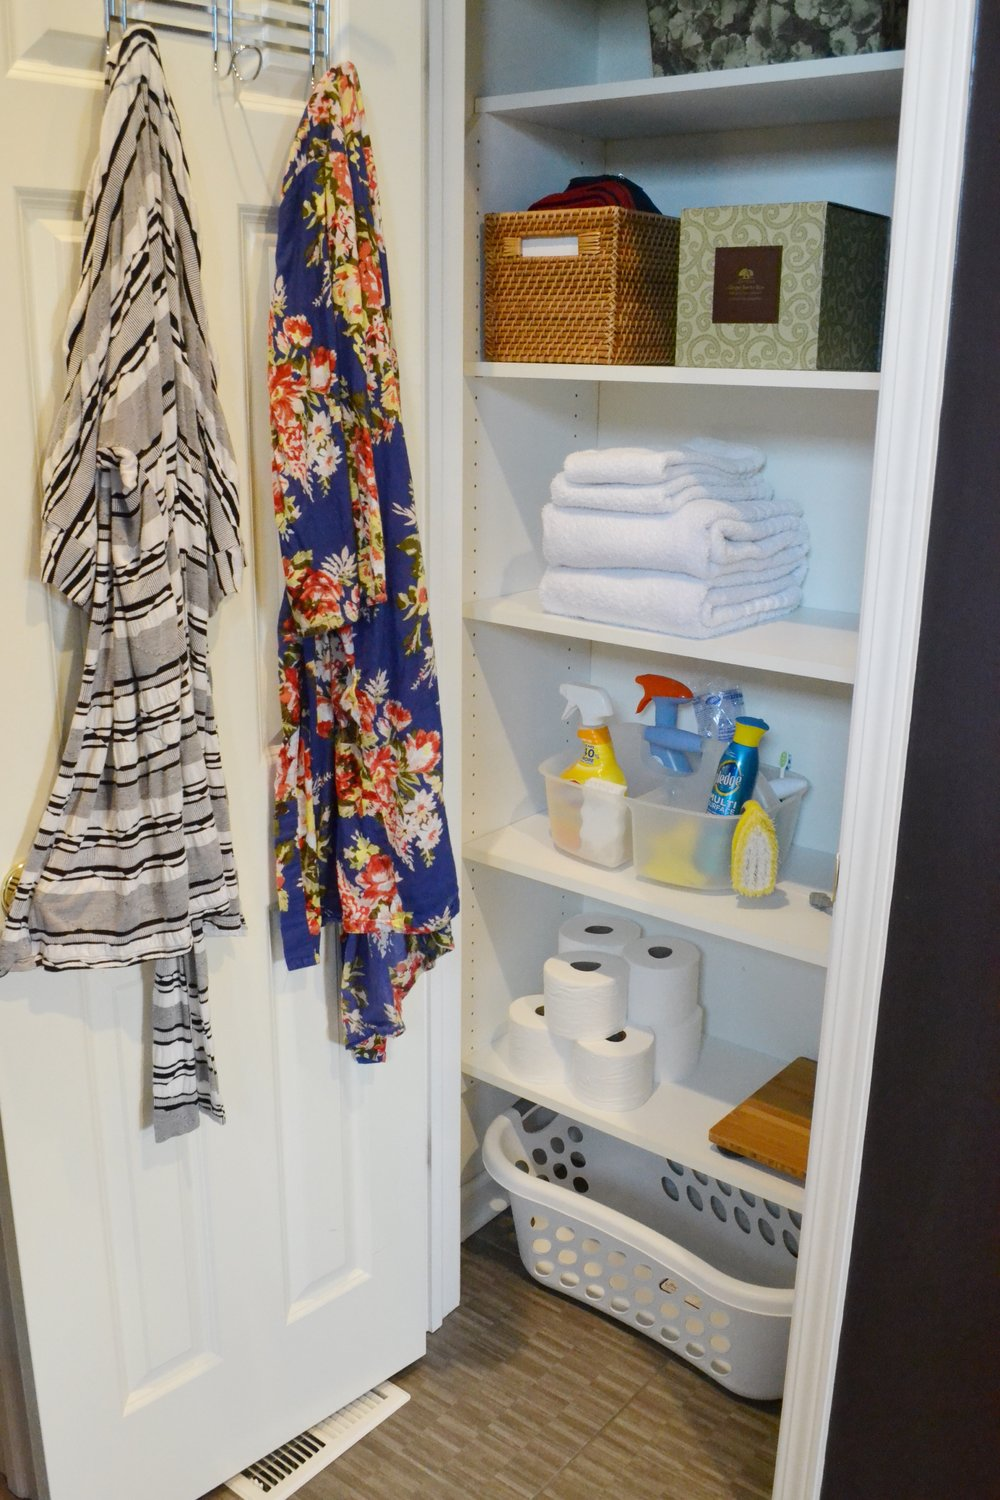 Linen Closet essentials - a limited supply of towels (and what you don't see is a spare set of sheets).